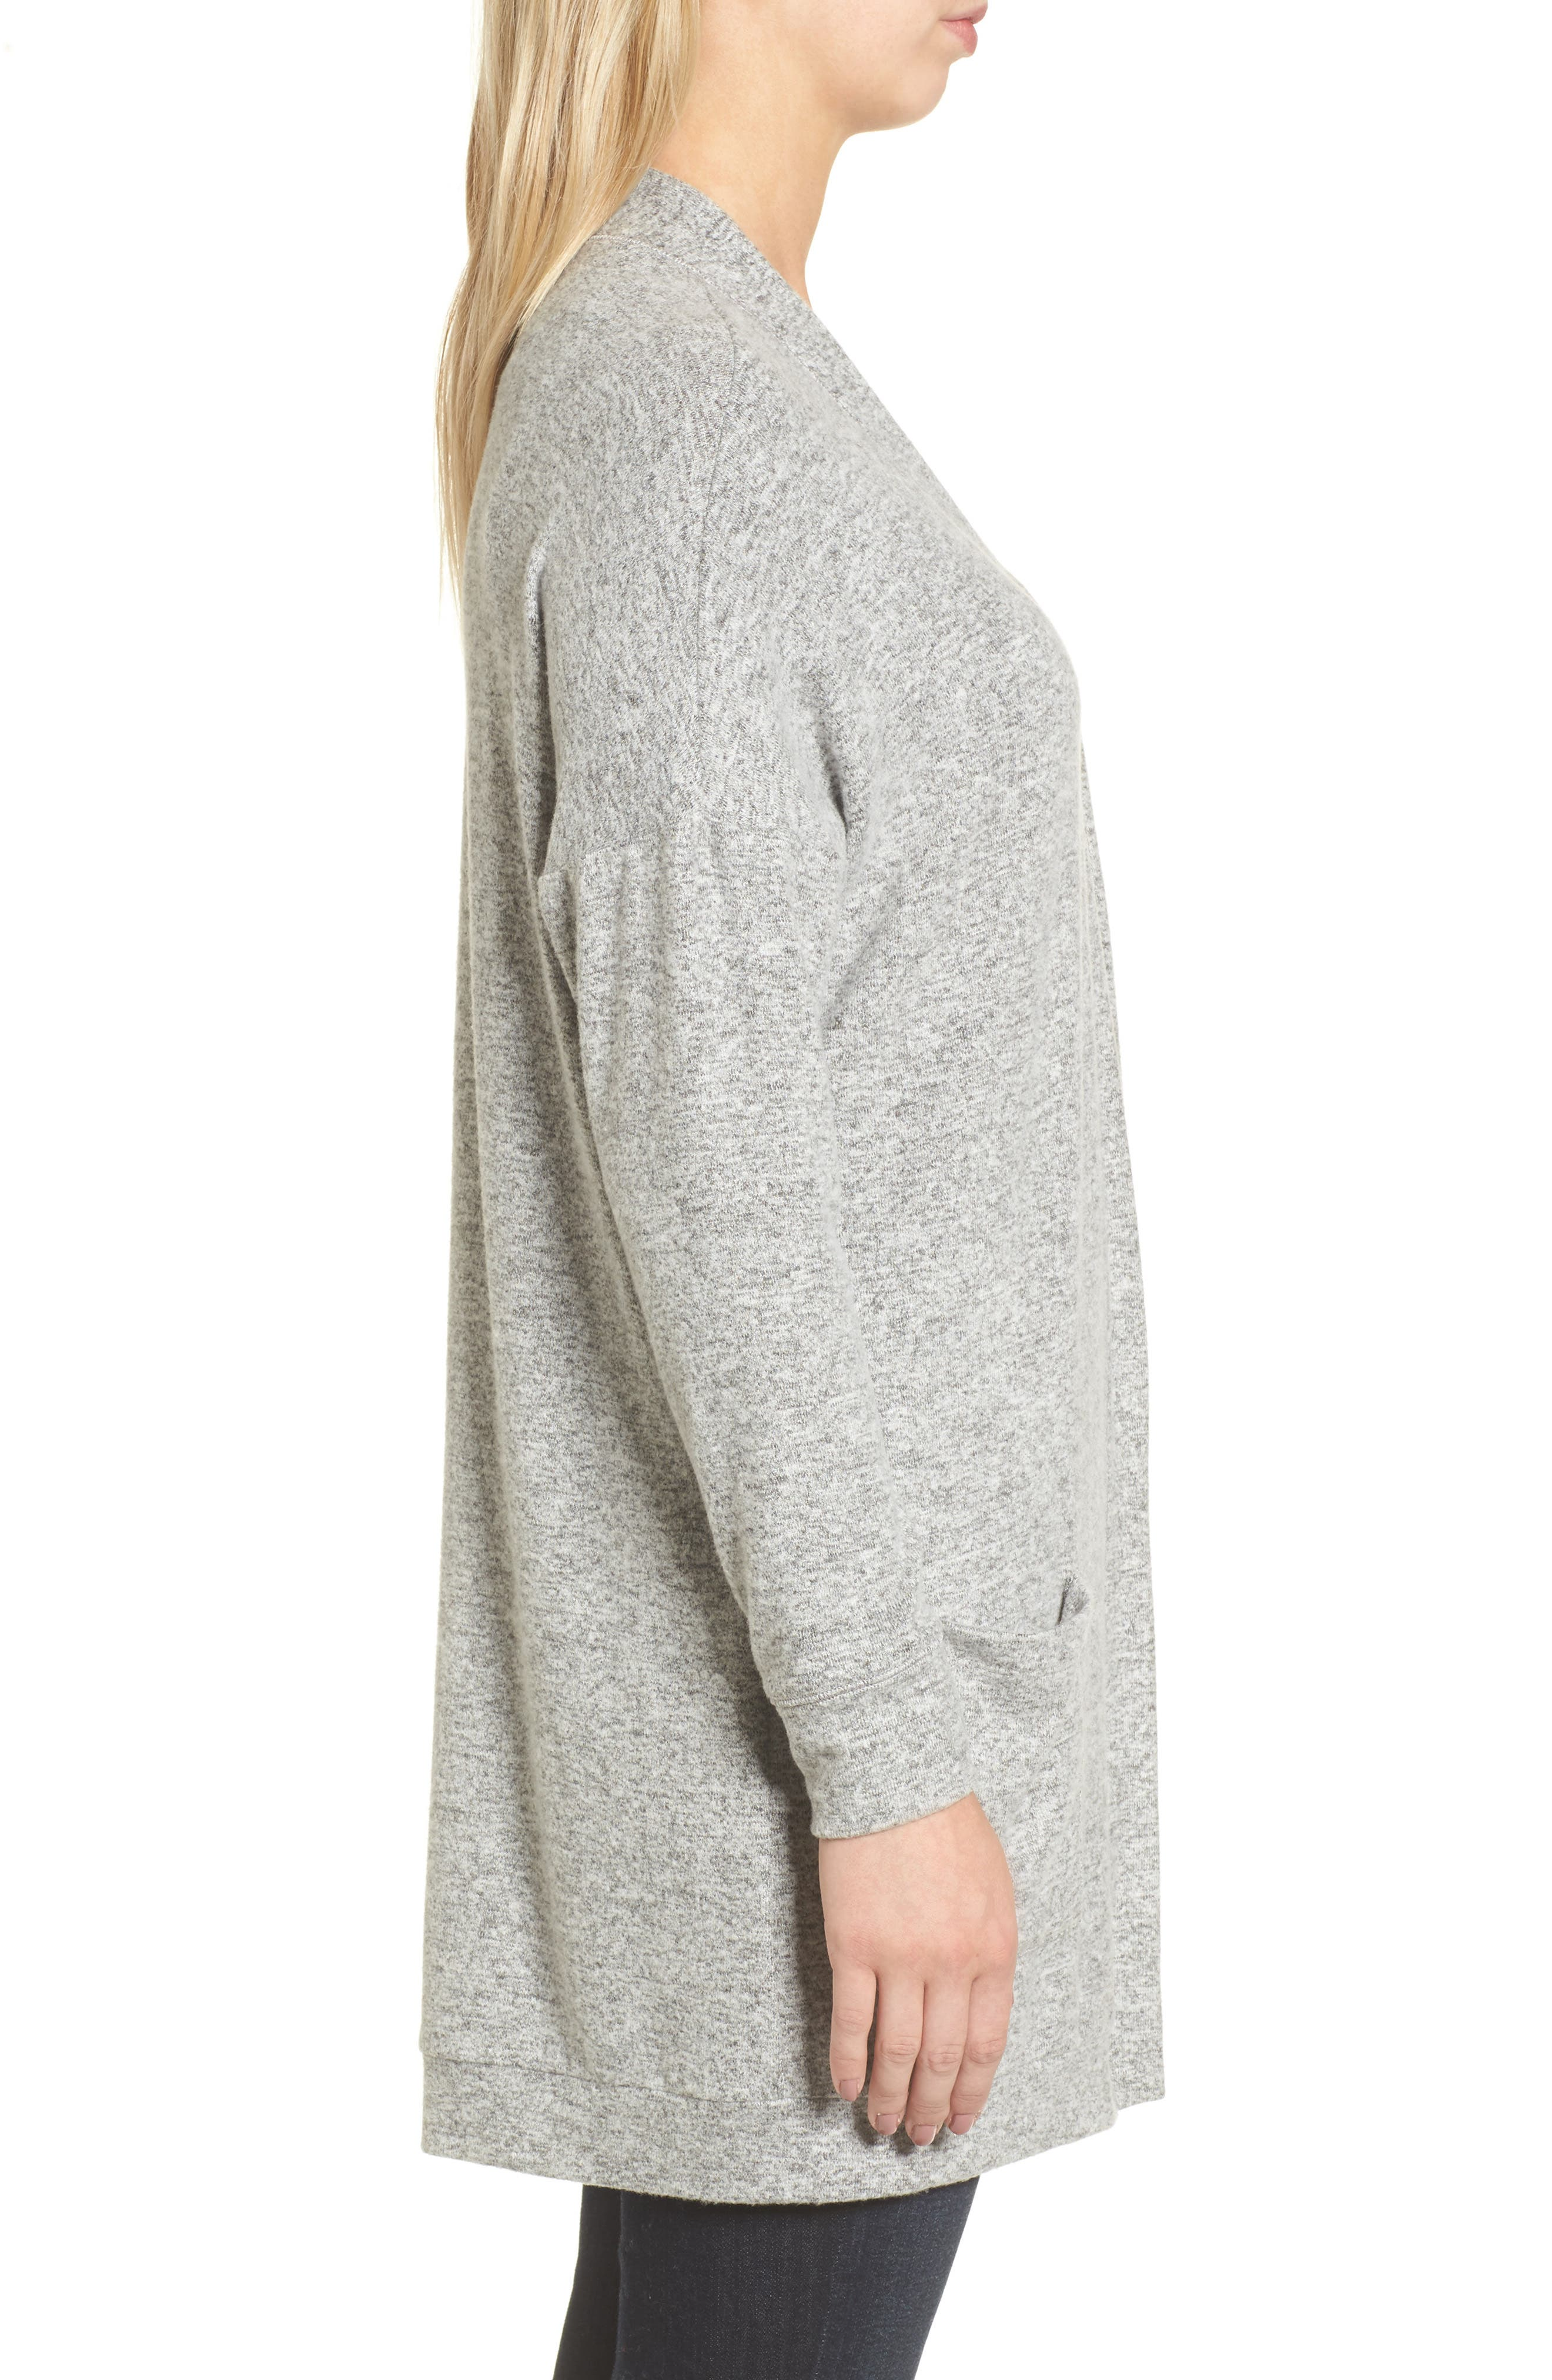 Rib Knit Cardigan,                             Alternate thumbnail 3, color,                             LIGHT HEATHER GREY